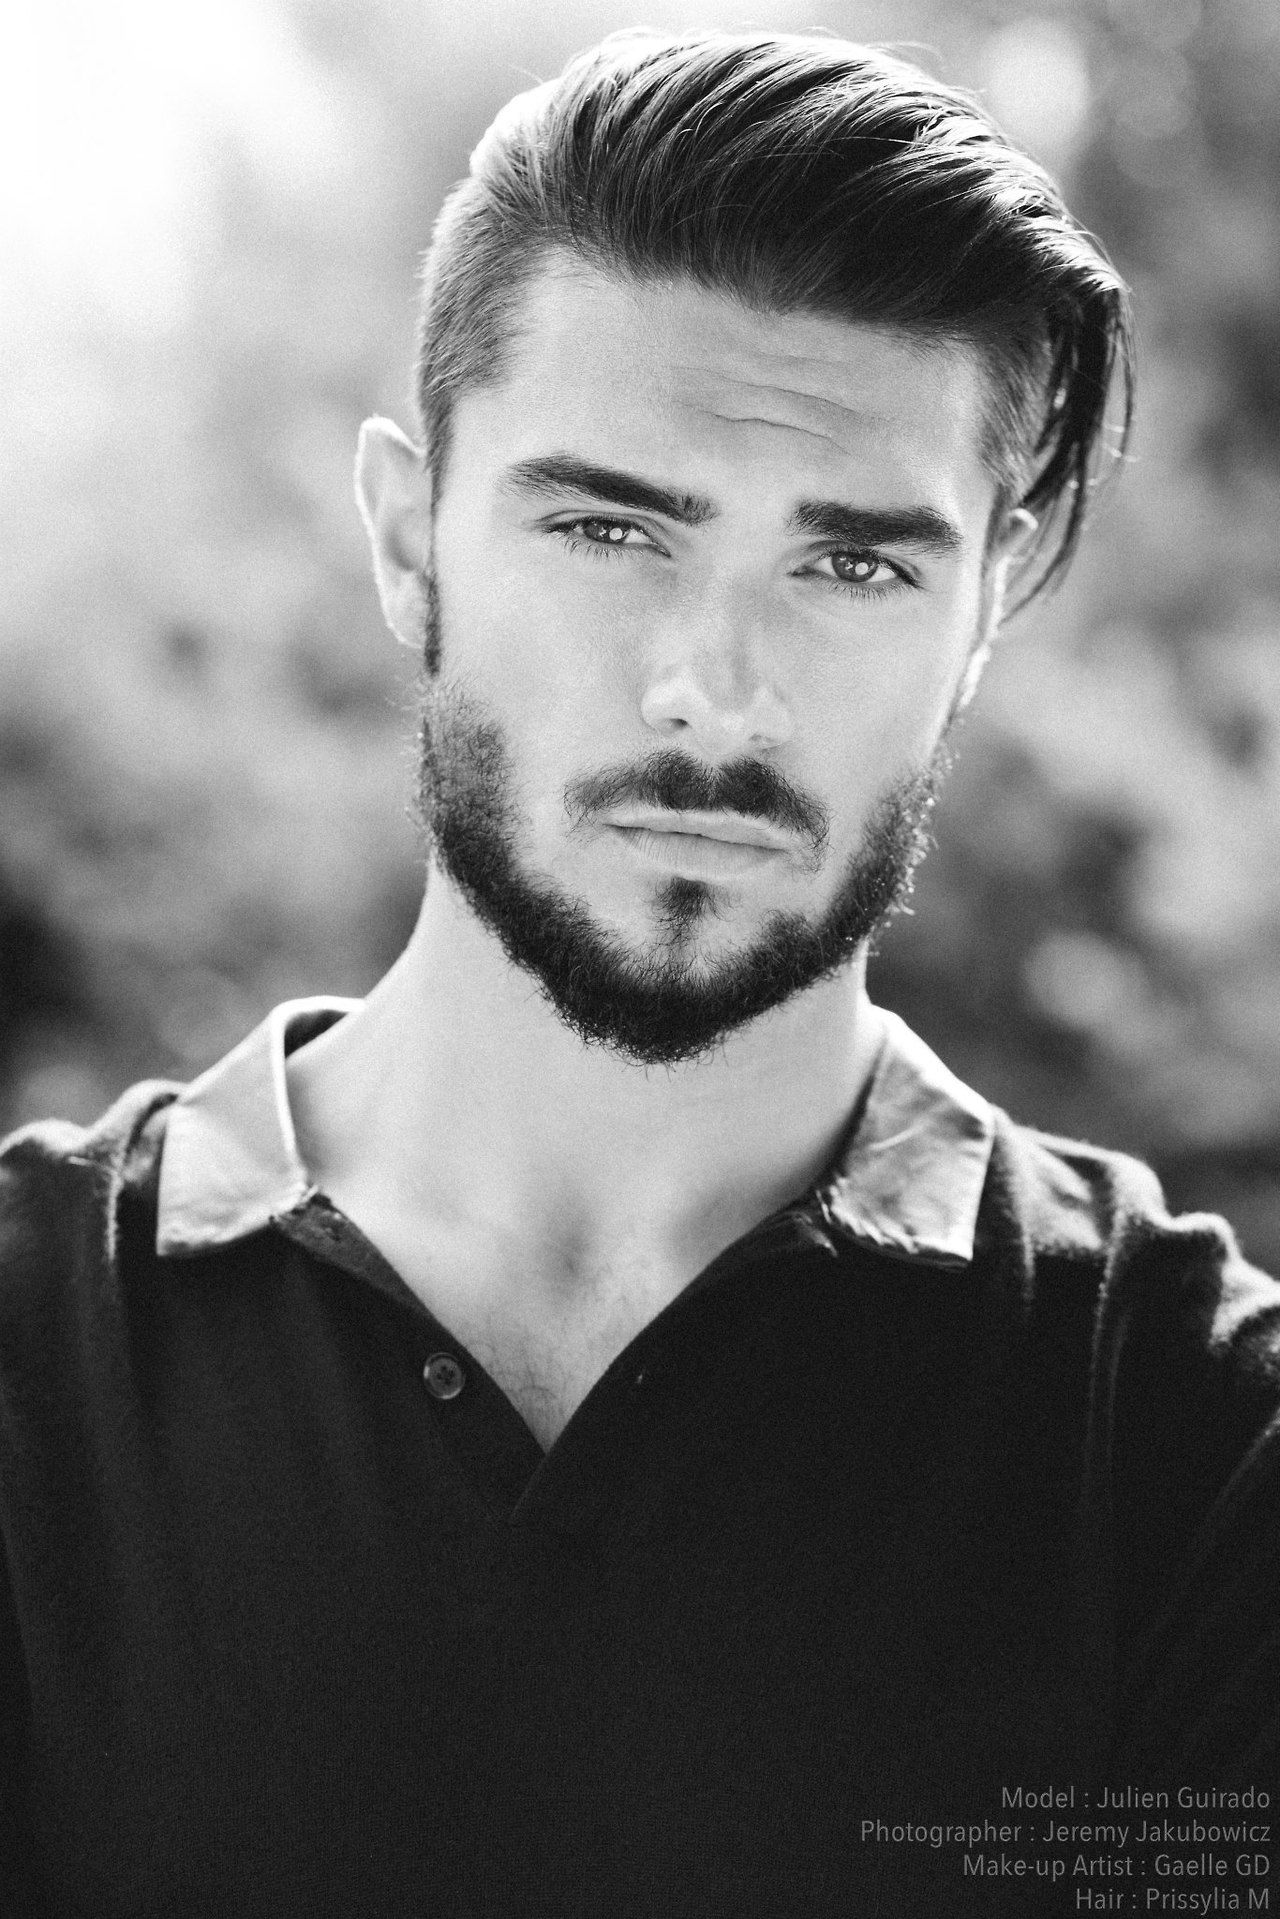 Great Undercut Hairstyle Short Lengthy In Sides Great Length And Texture On Top Beard Styles For Men Undercut Hairstyles Mens Hairstyles